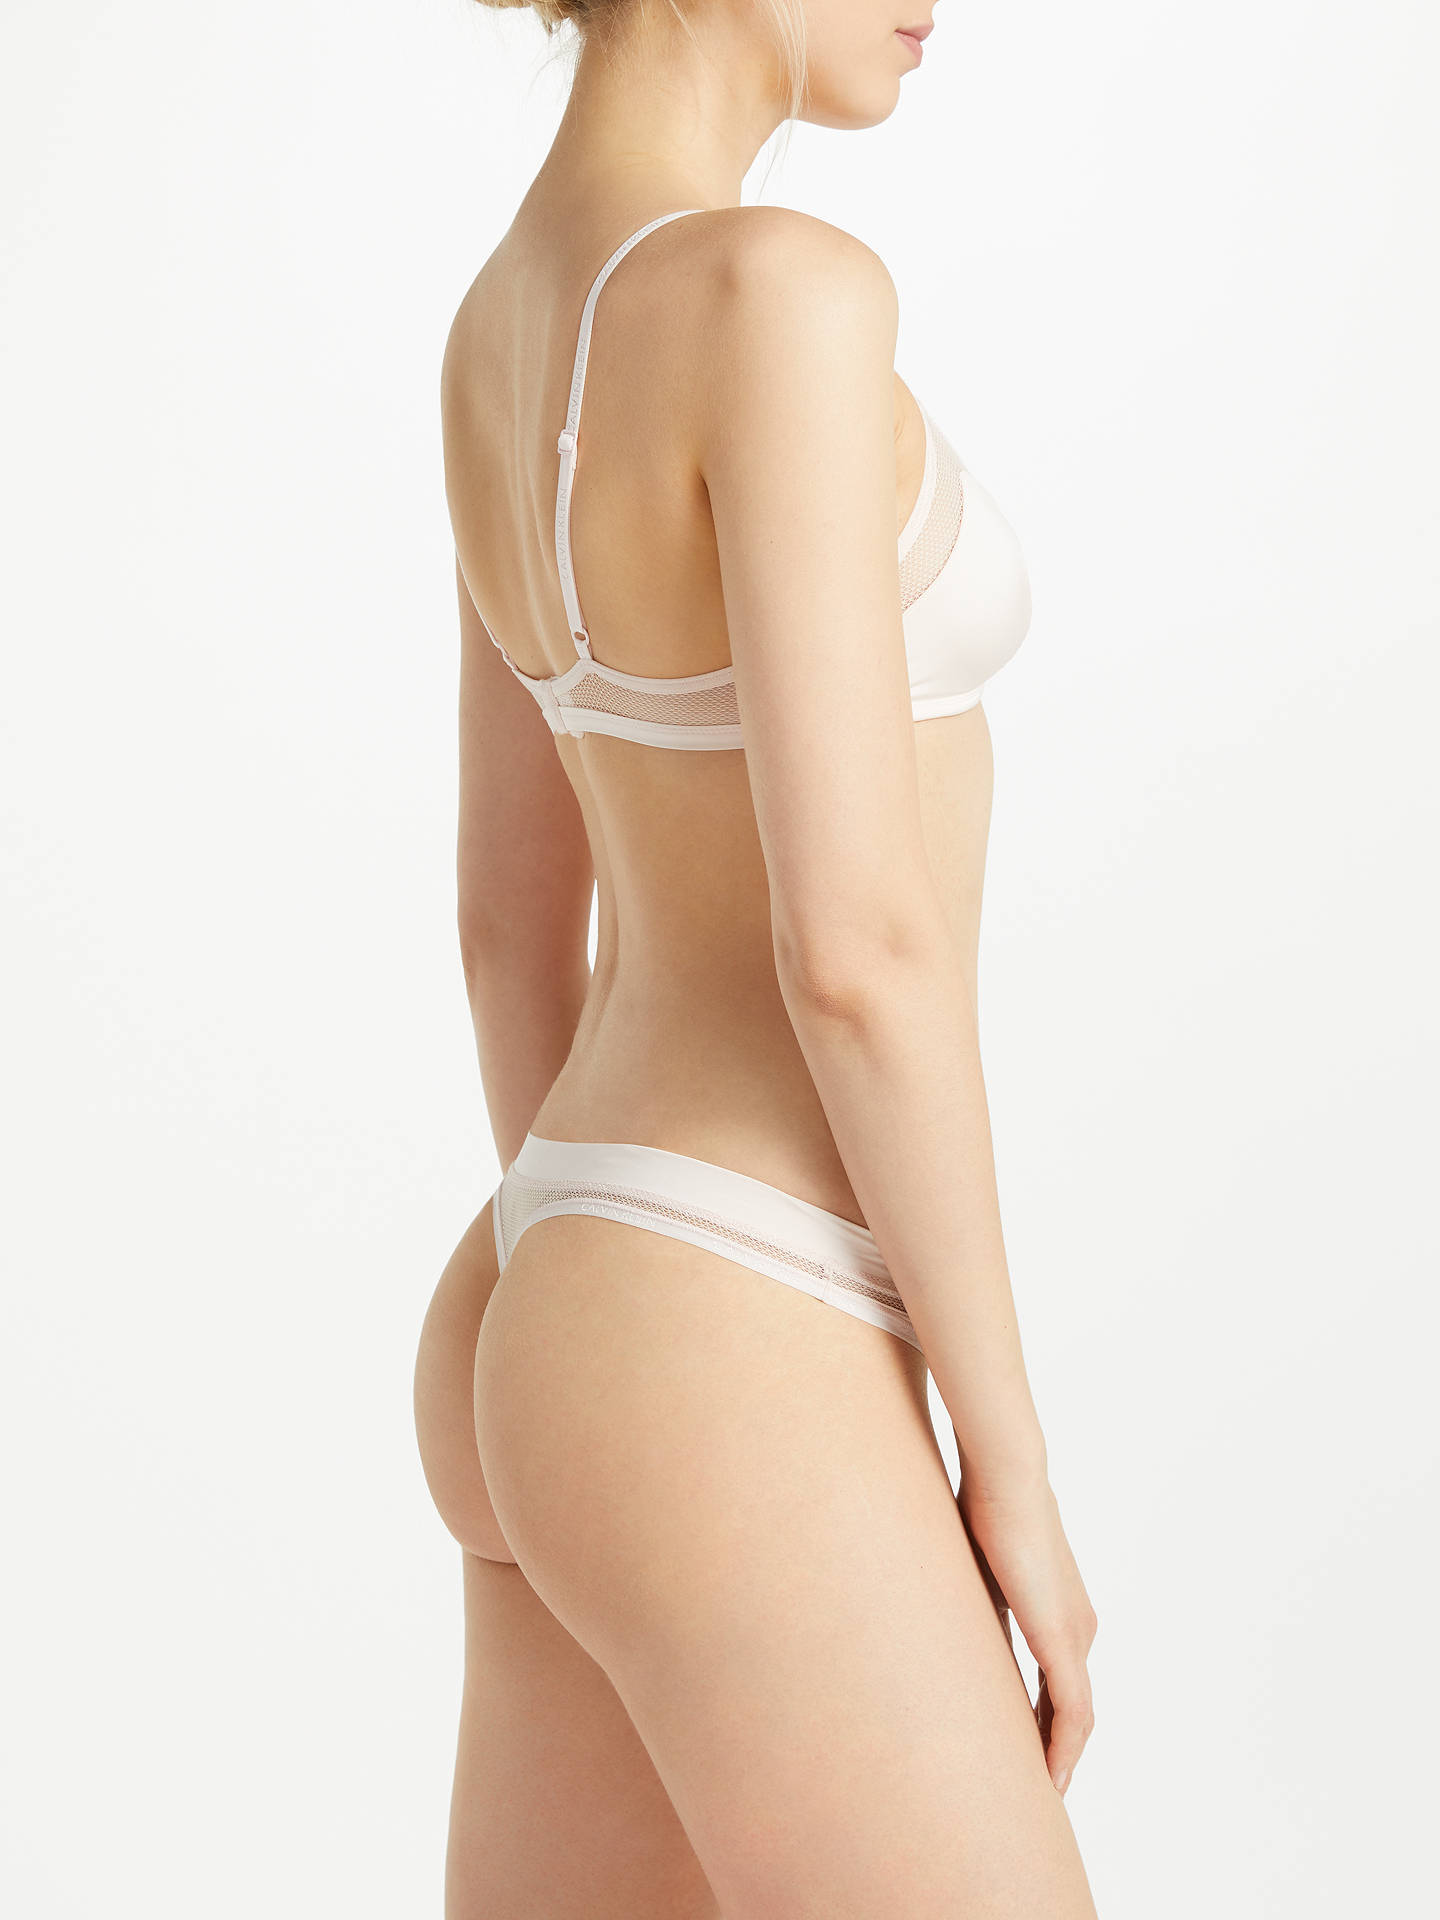 BuyCalvin Klein Underwear Youthful Unlined Triangle Bra, Nympth, L Online at johnlewis.com